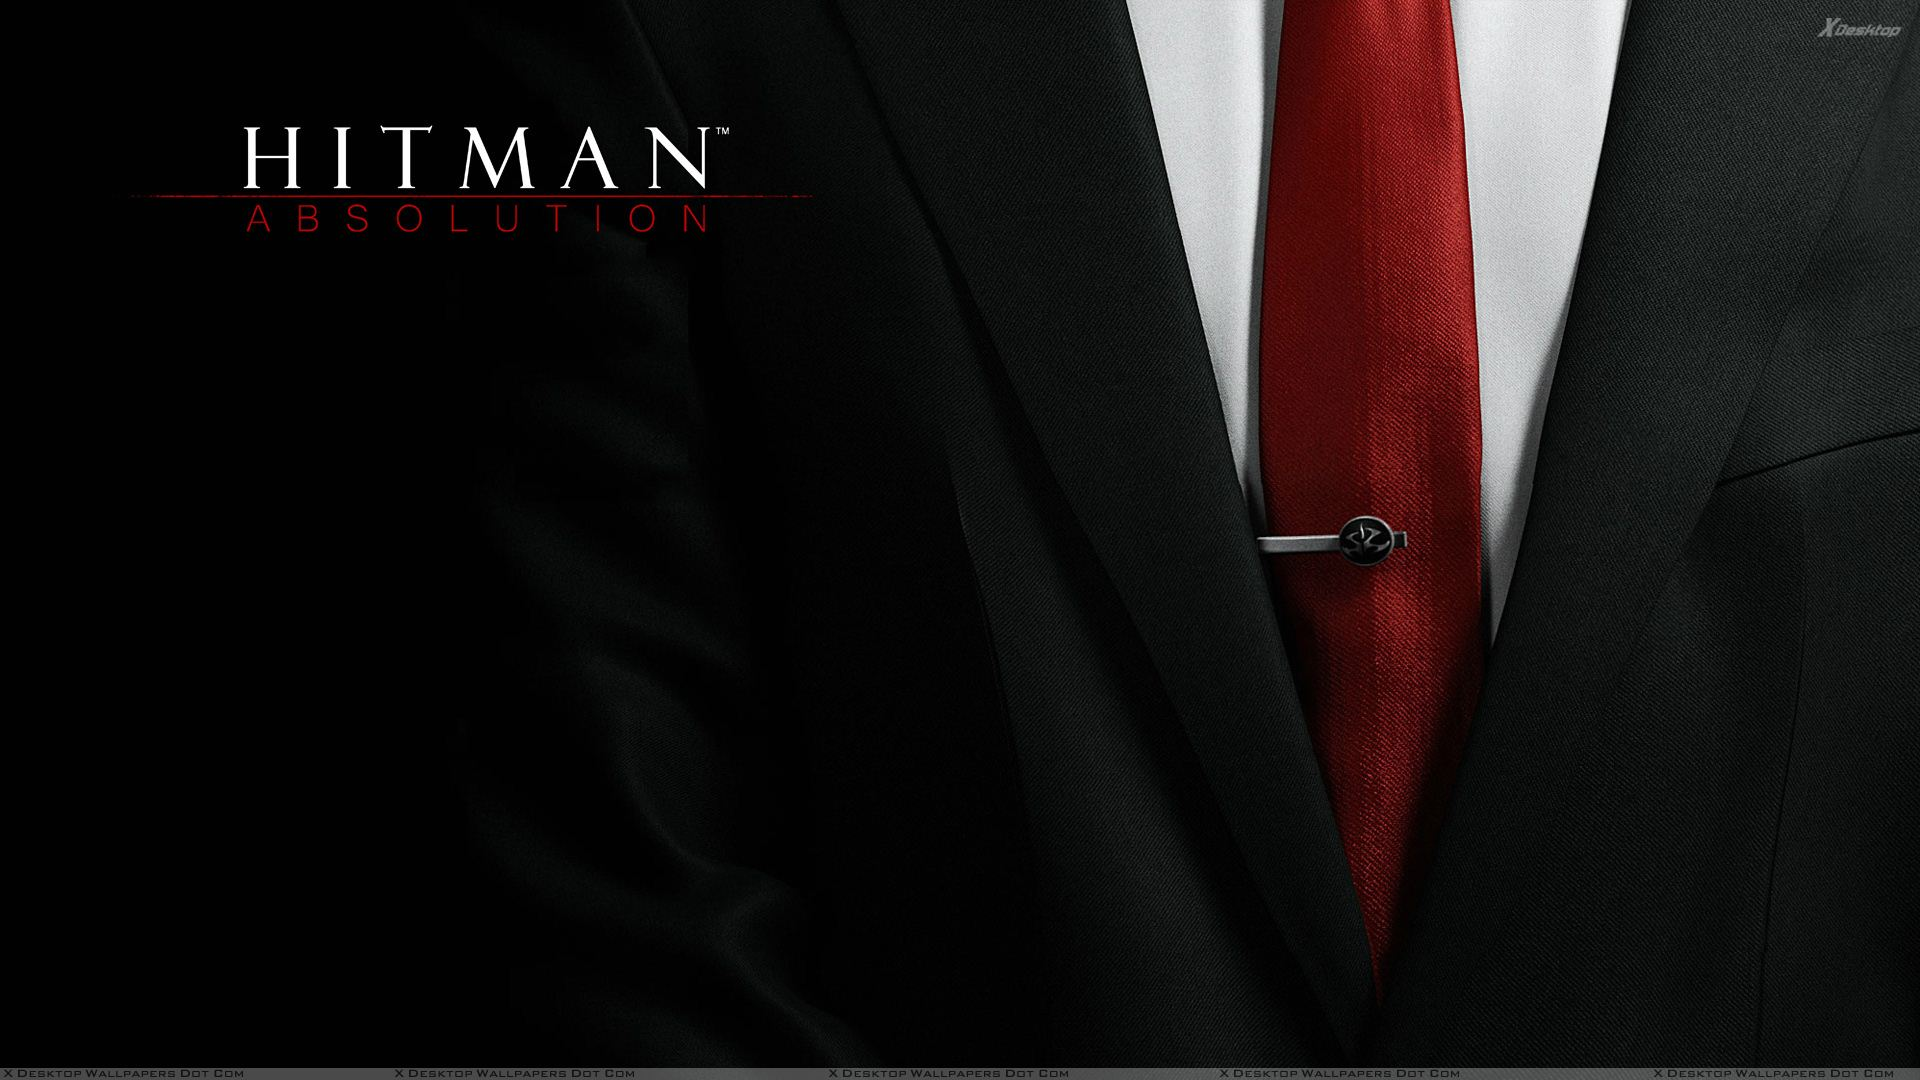 Hitman Absolution Wallpapers Photos Images in HD 1920x1080